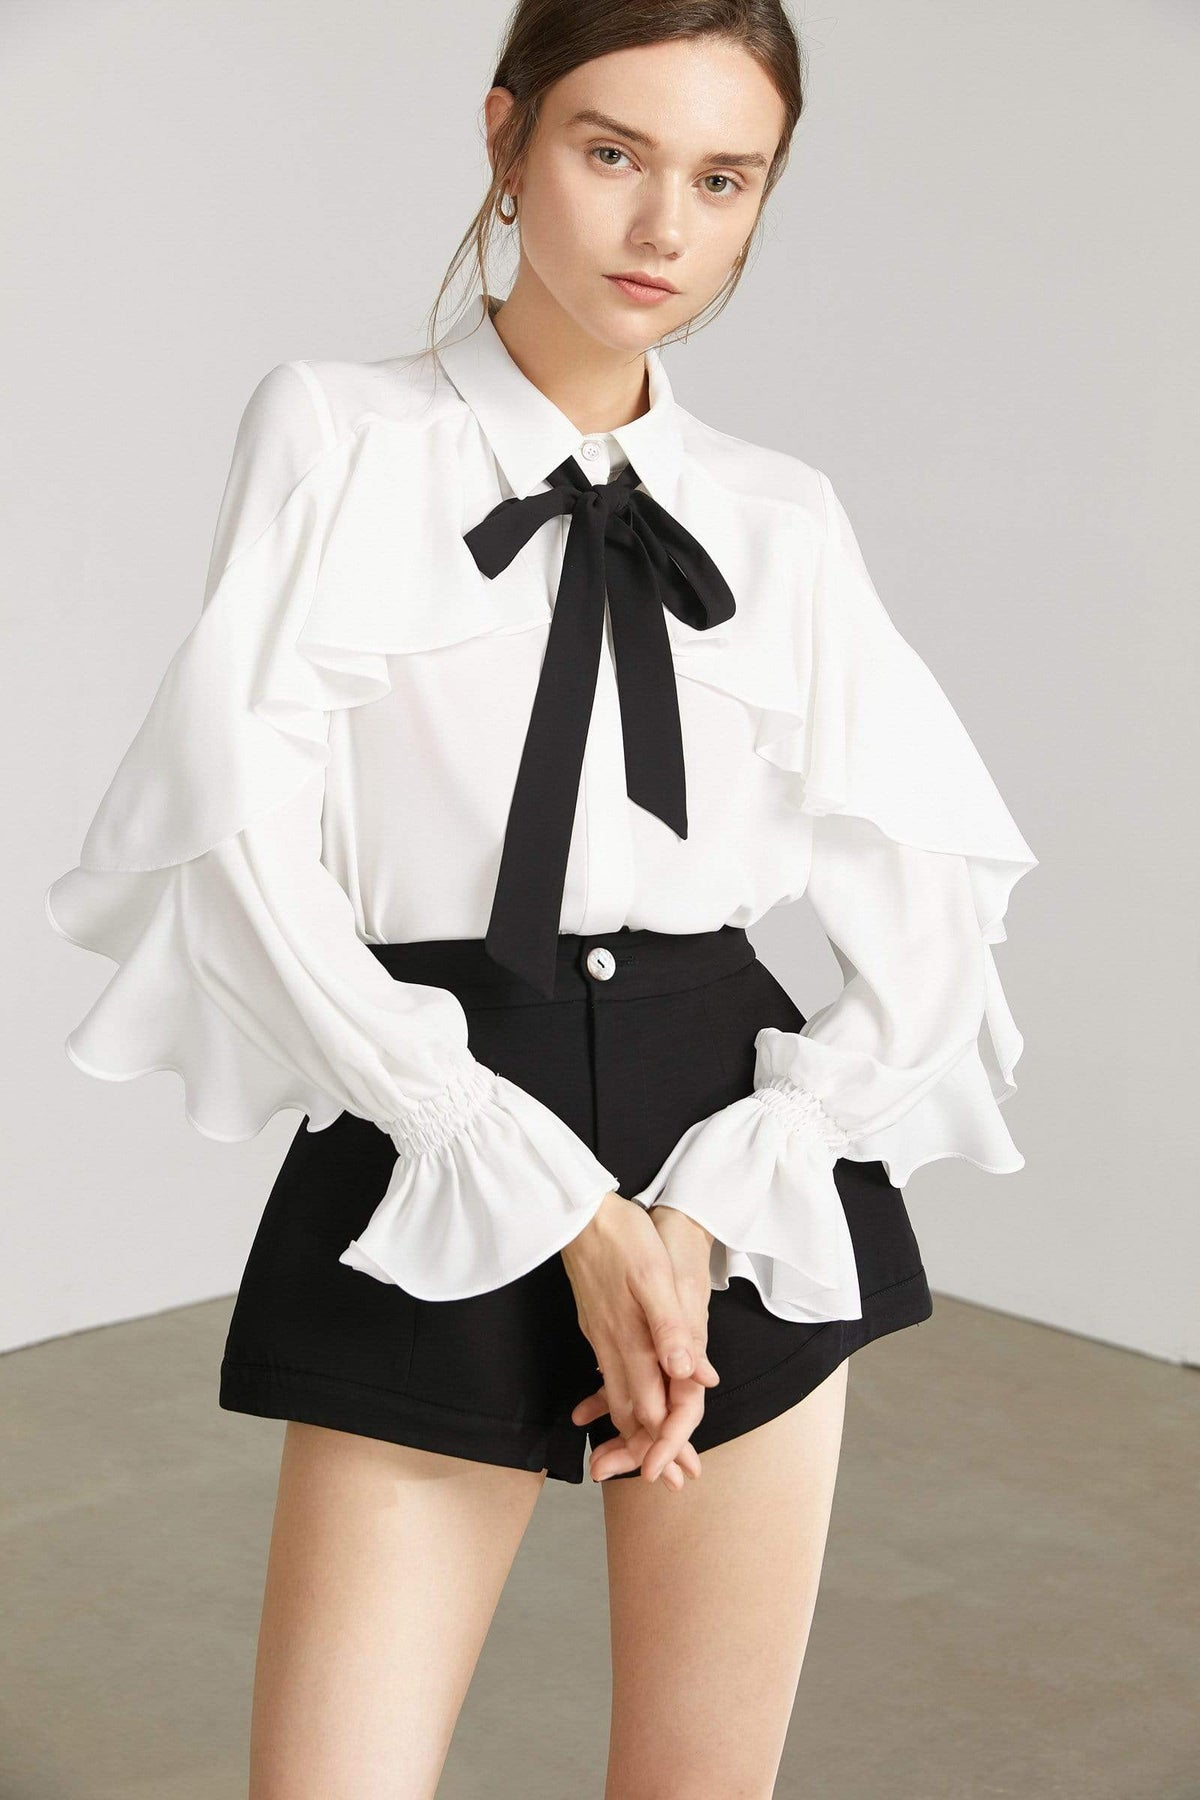 Oleander White Ruffled Blouse